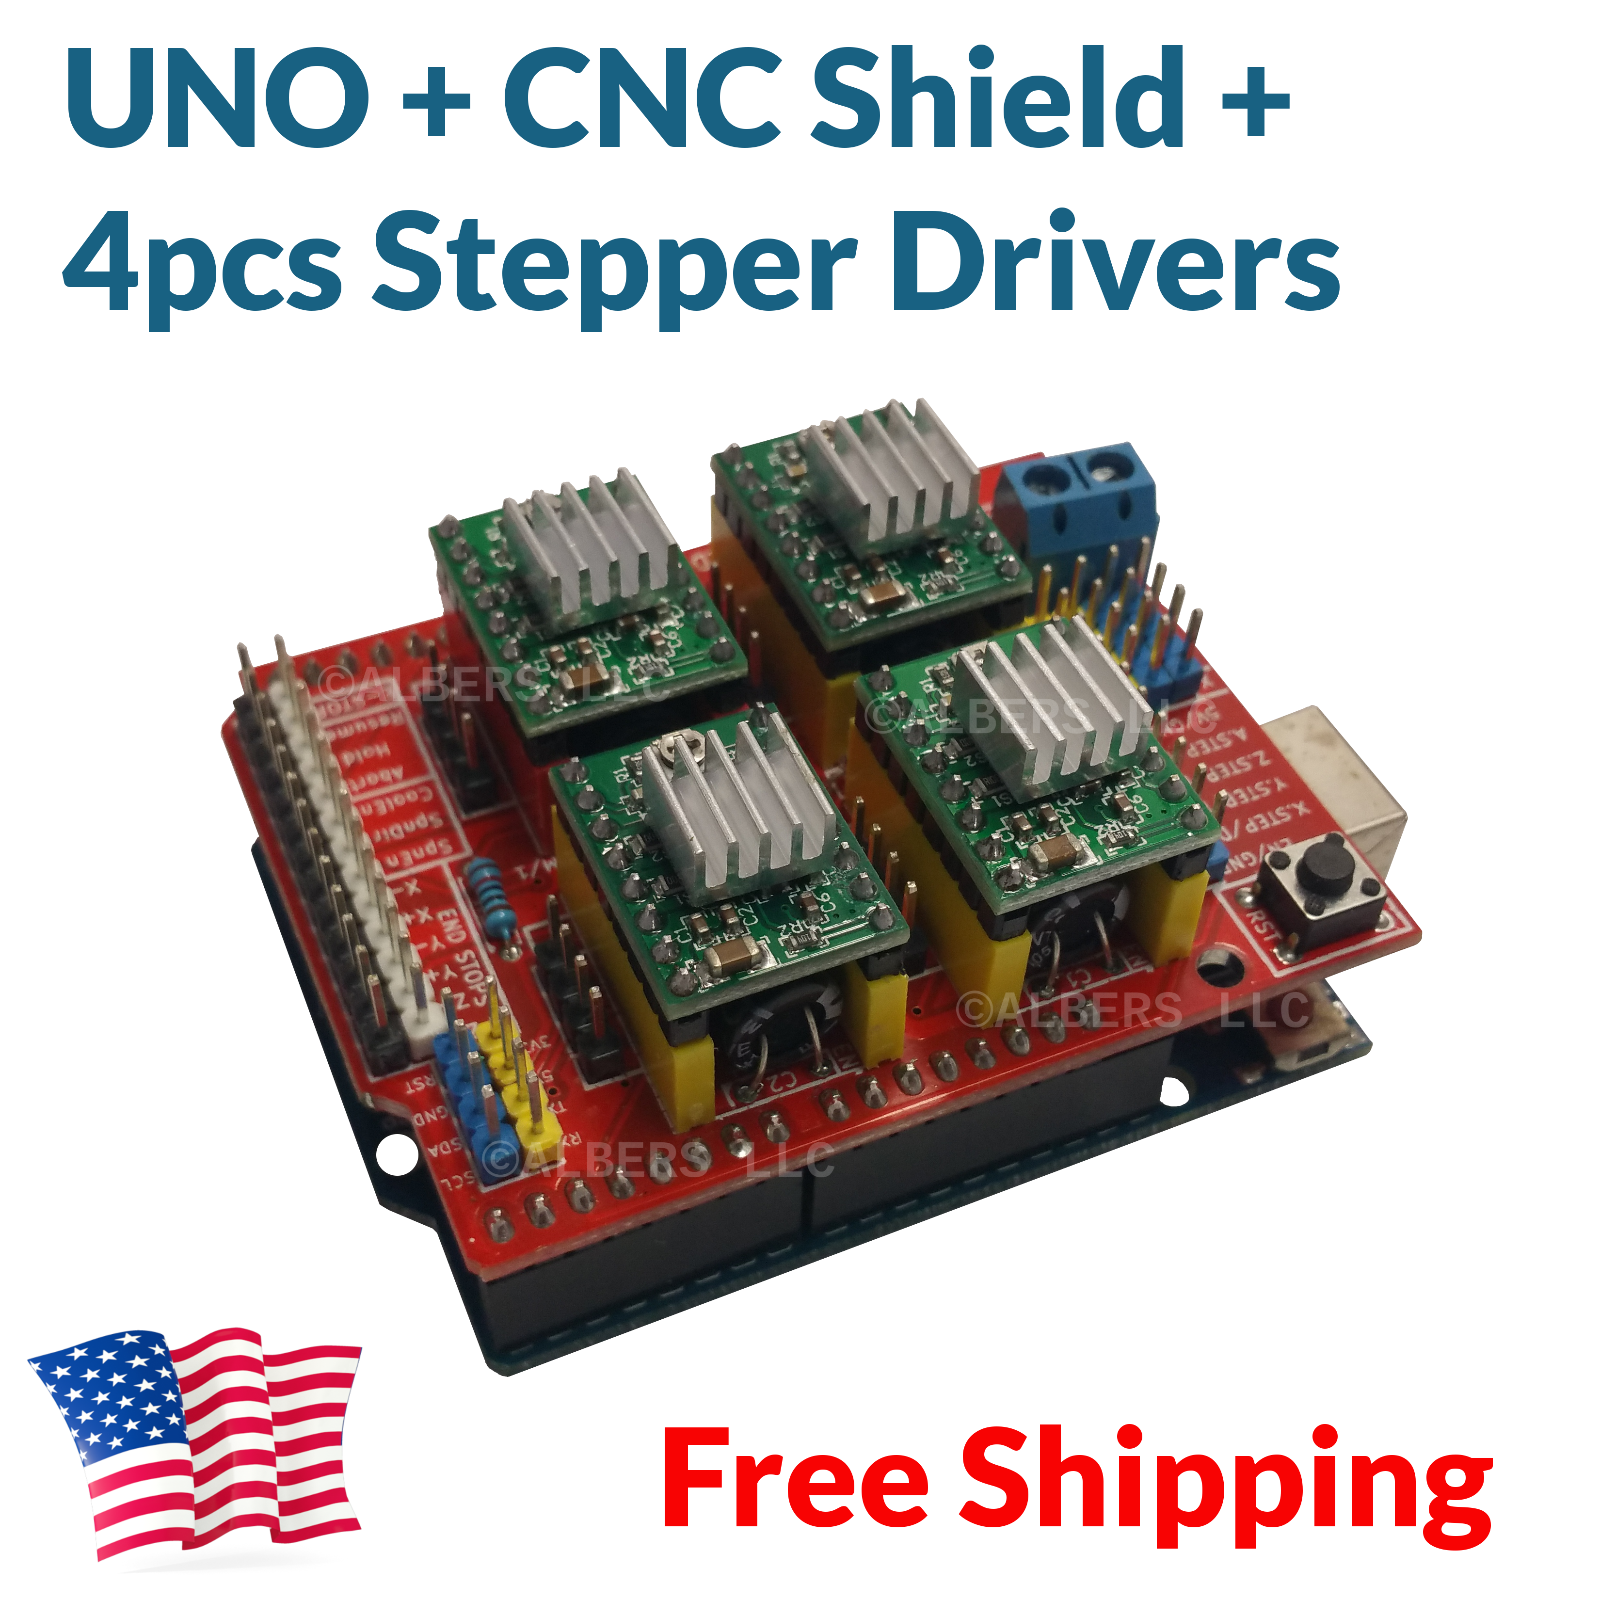 Details about Arduino CNC Shield Kit - UNO Board + 4x A4988 Drivers Package  Deal FREE USA SHIP